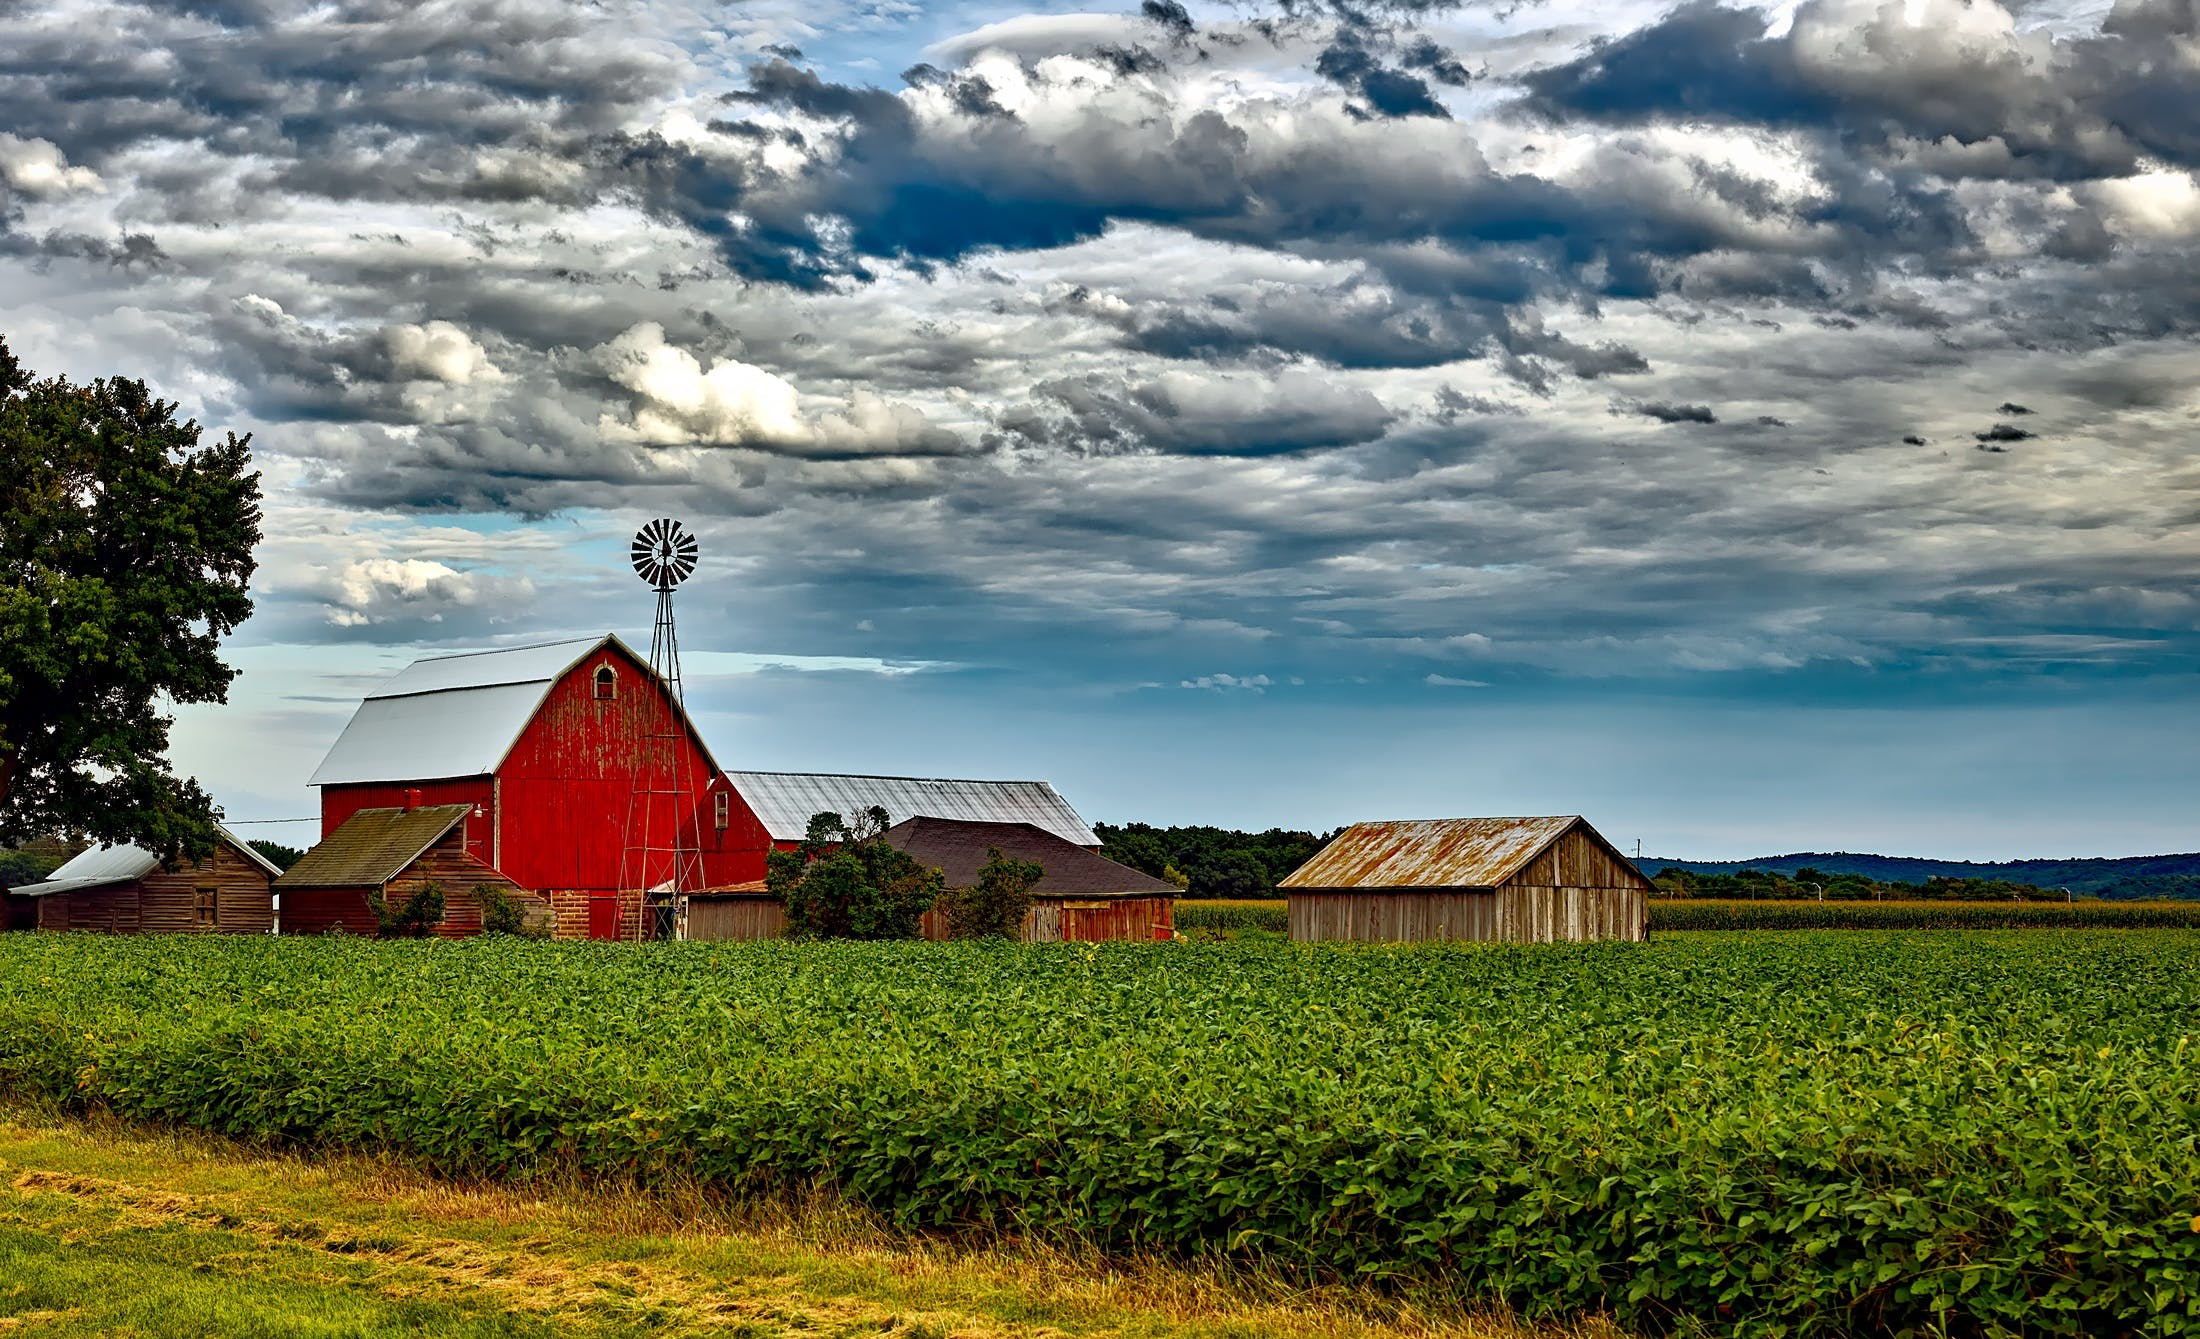 Houses in Farm Against Cloudy Sky